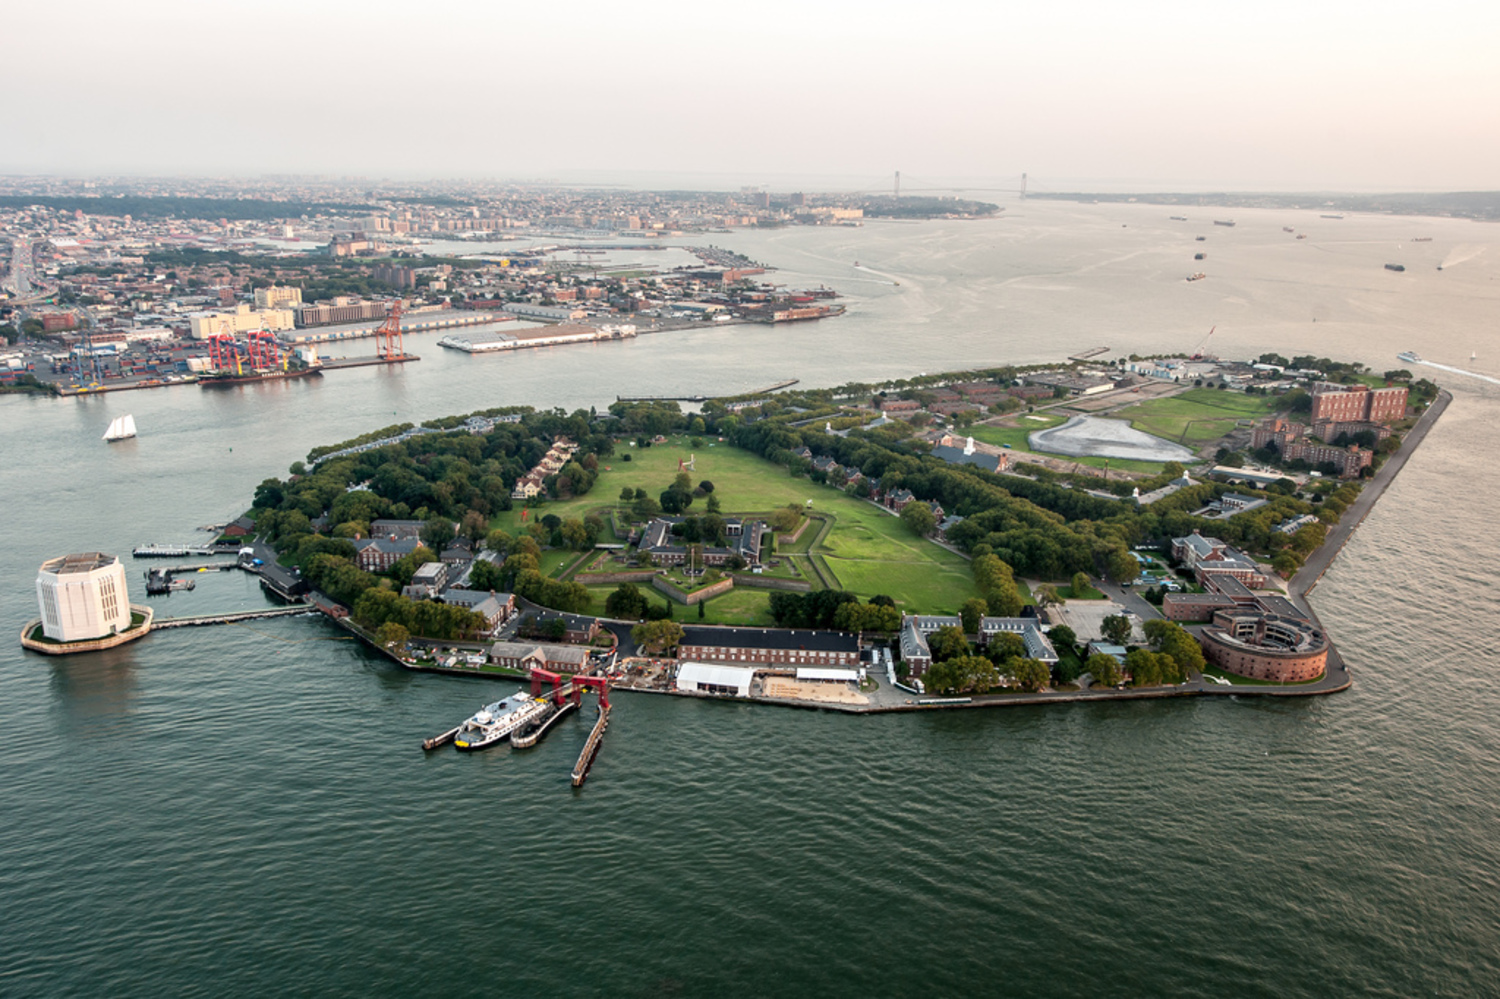 "Governors Island Aerial | NEW YORK - AUGUST 2: Aerial view of Governors Island on  August 2, 2012 in New York. Located in Upper New York Bay between Manhattan and Brooklyn, Governors Island is home to historical fortifications, Fort Jay and Castle Williams. <a href=""http://www.keithsherwood.com"" rel=""nofollow"">www.keithsherwood.com</a>"